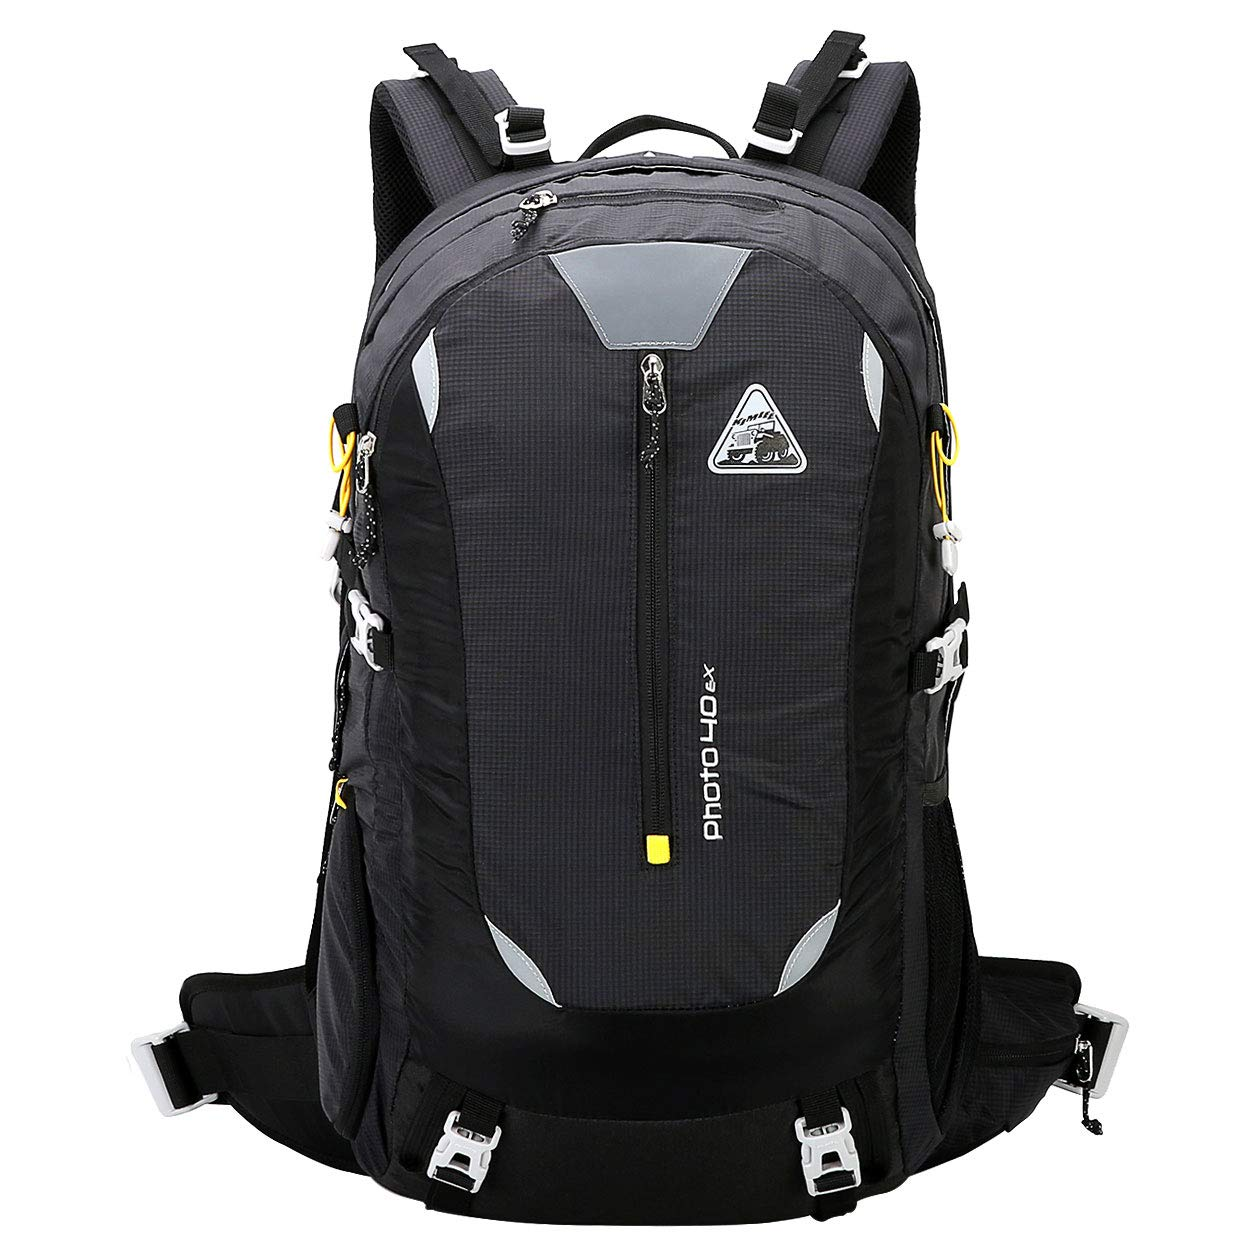 b6b11e941f7c Galleon - KIMLEE Large Backpack For Women And Men Hiking Daypack ...